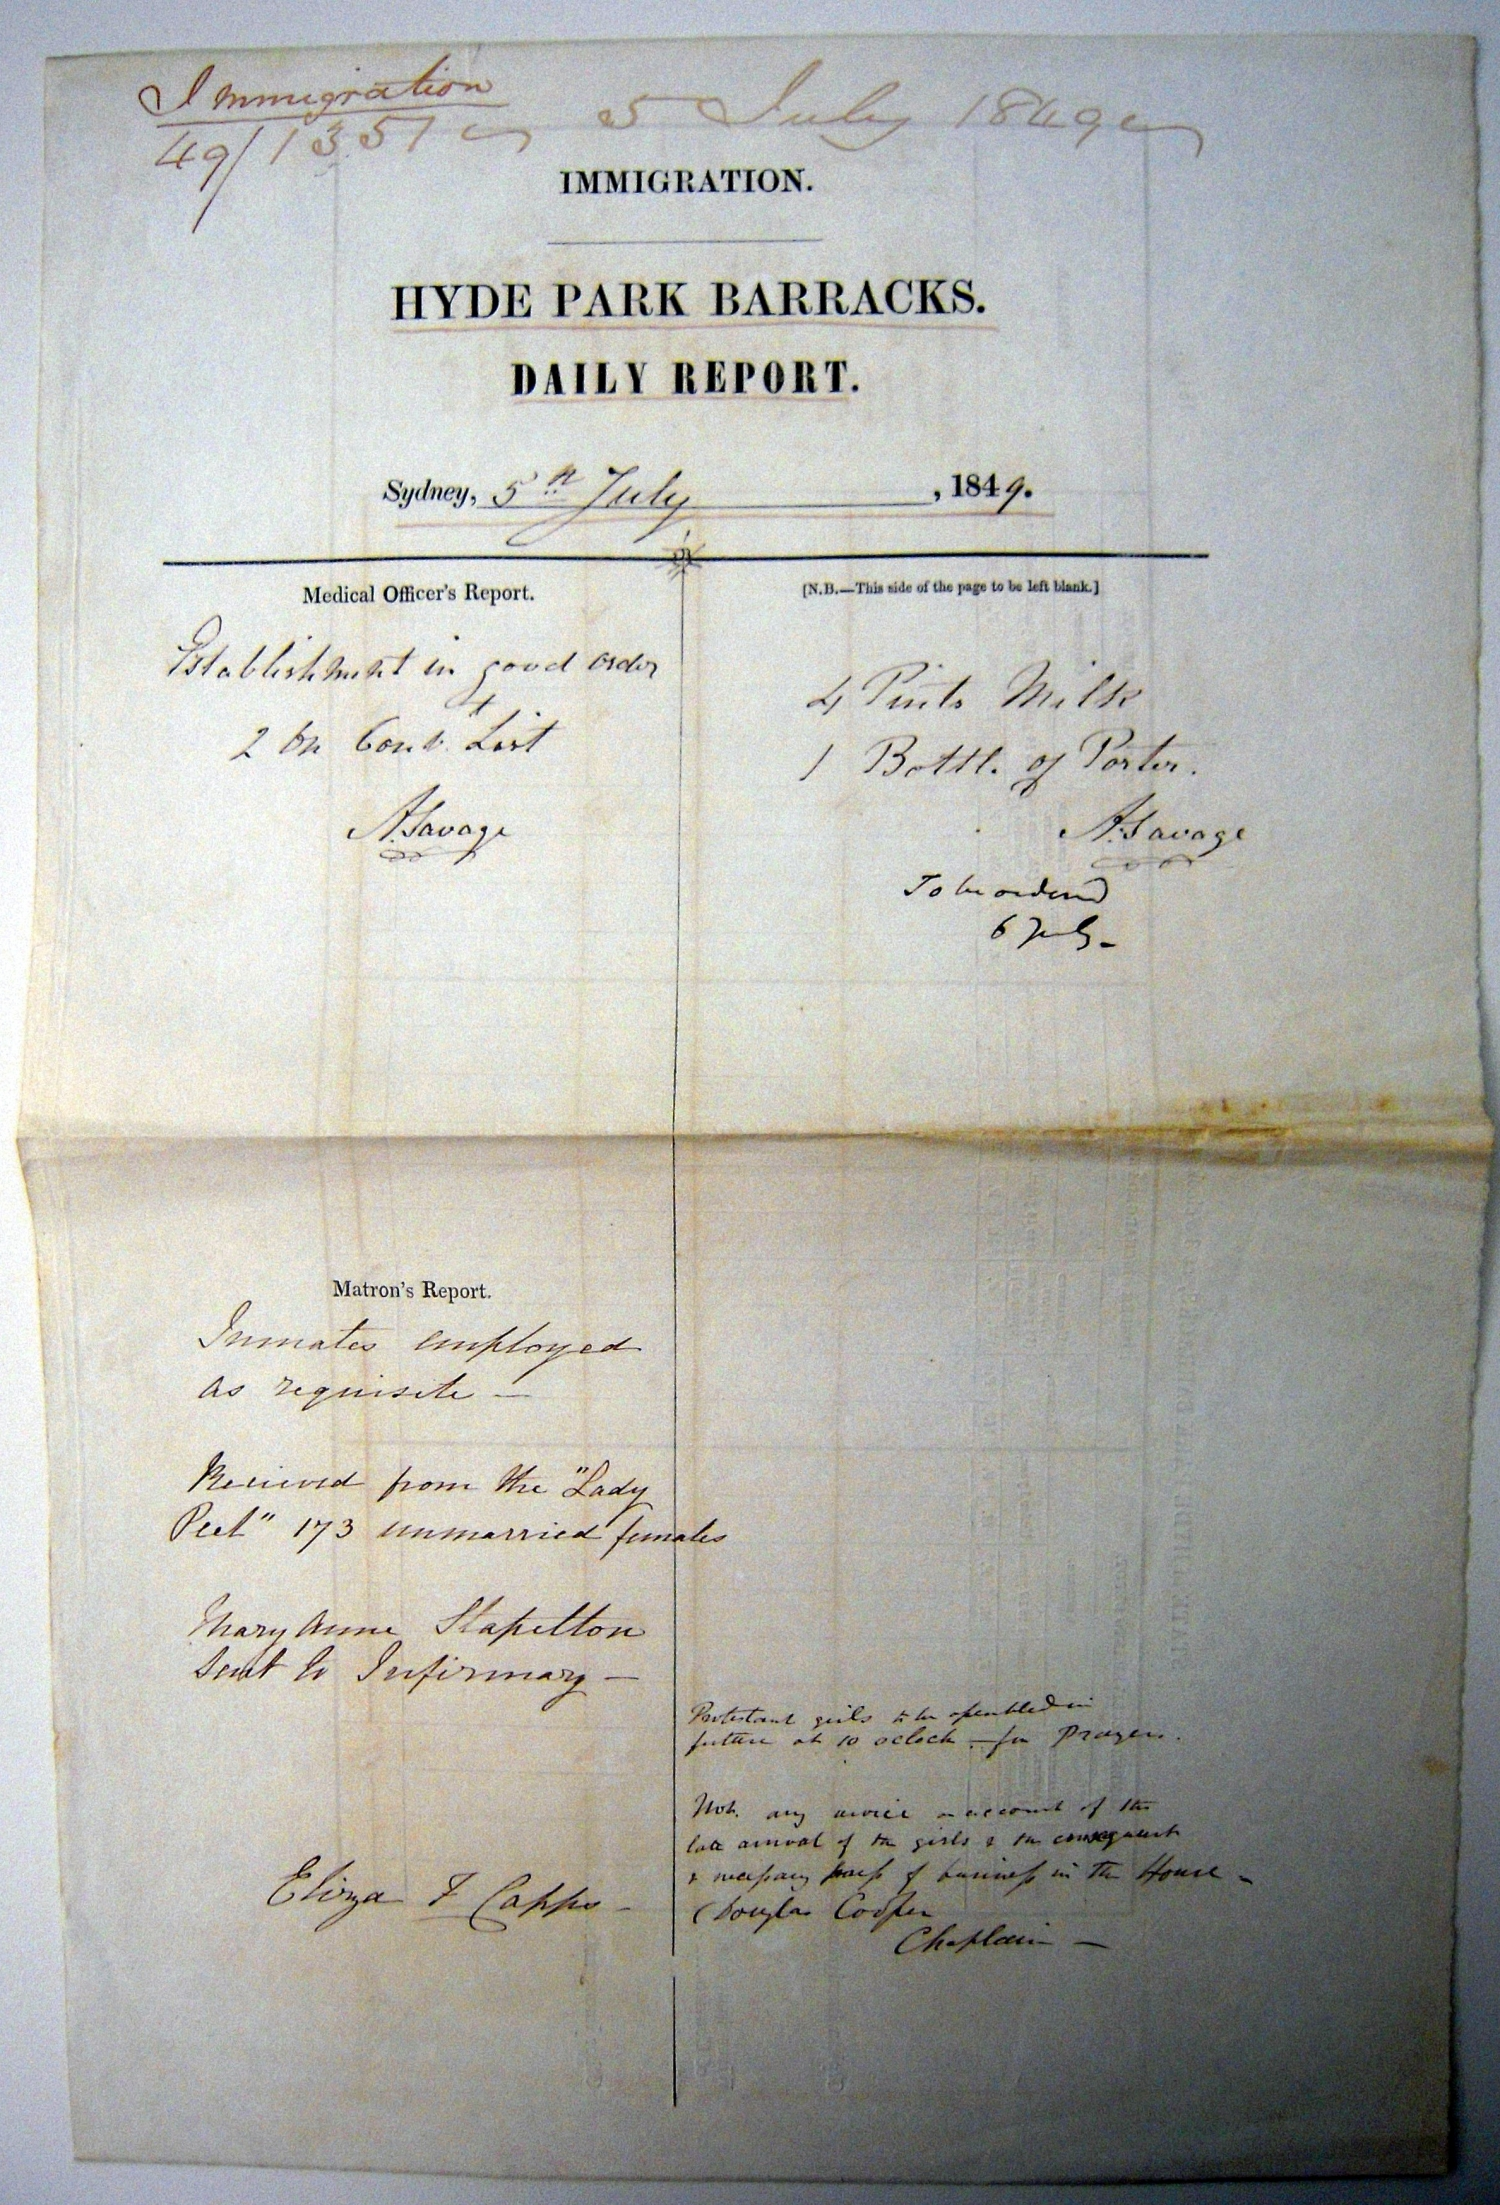 Ornately lettered report headed: Immigration | Hyde Park Barracks Daily Report. with subsection headed Matron's report with name of ship.